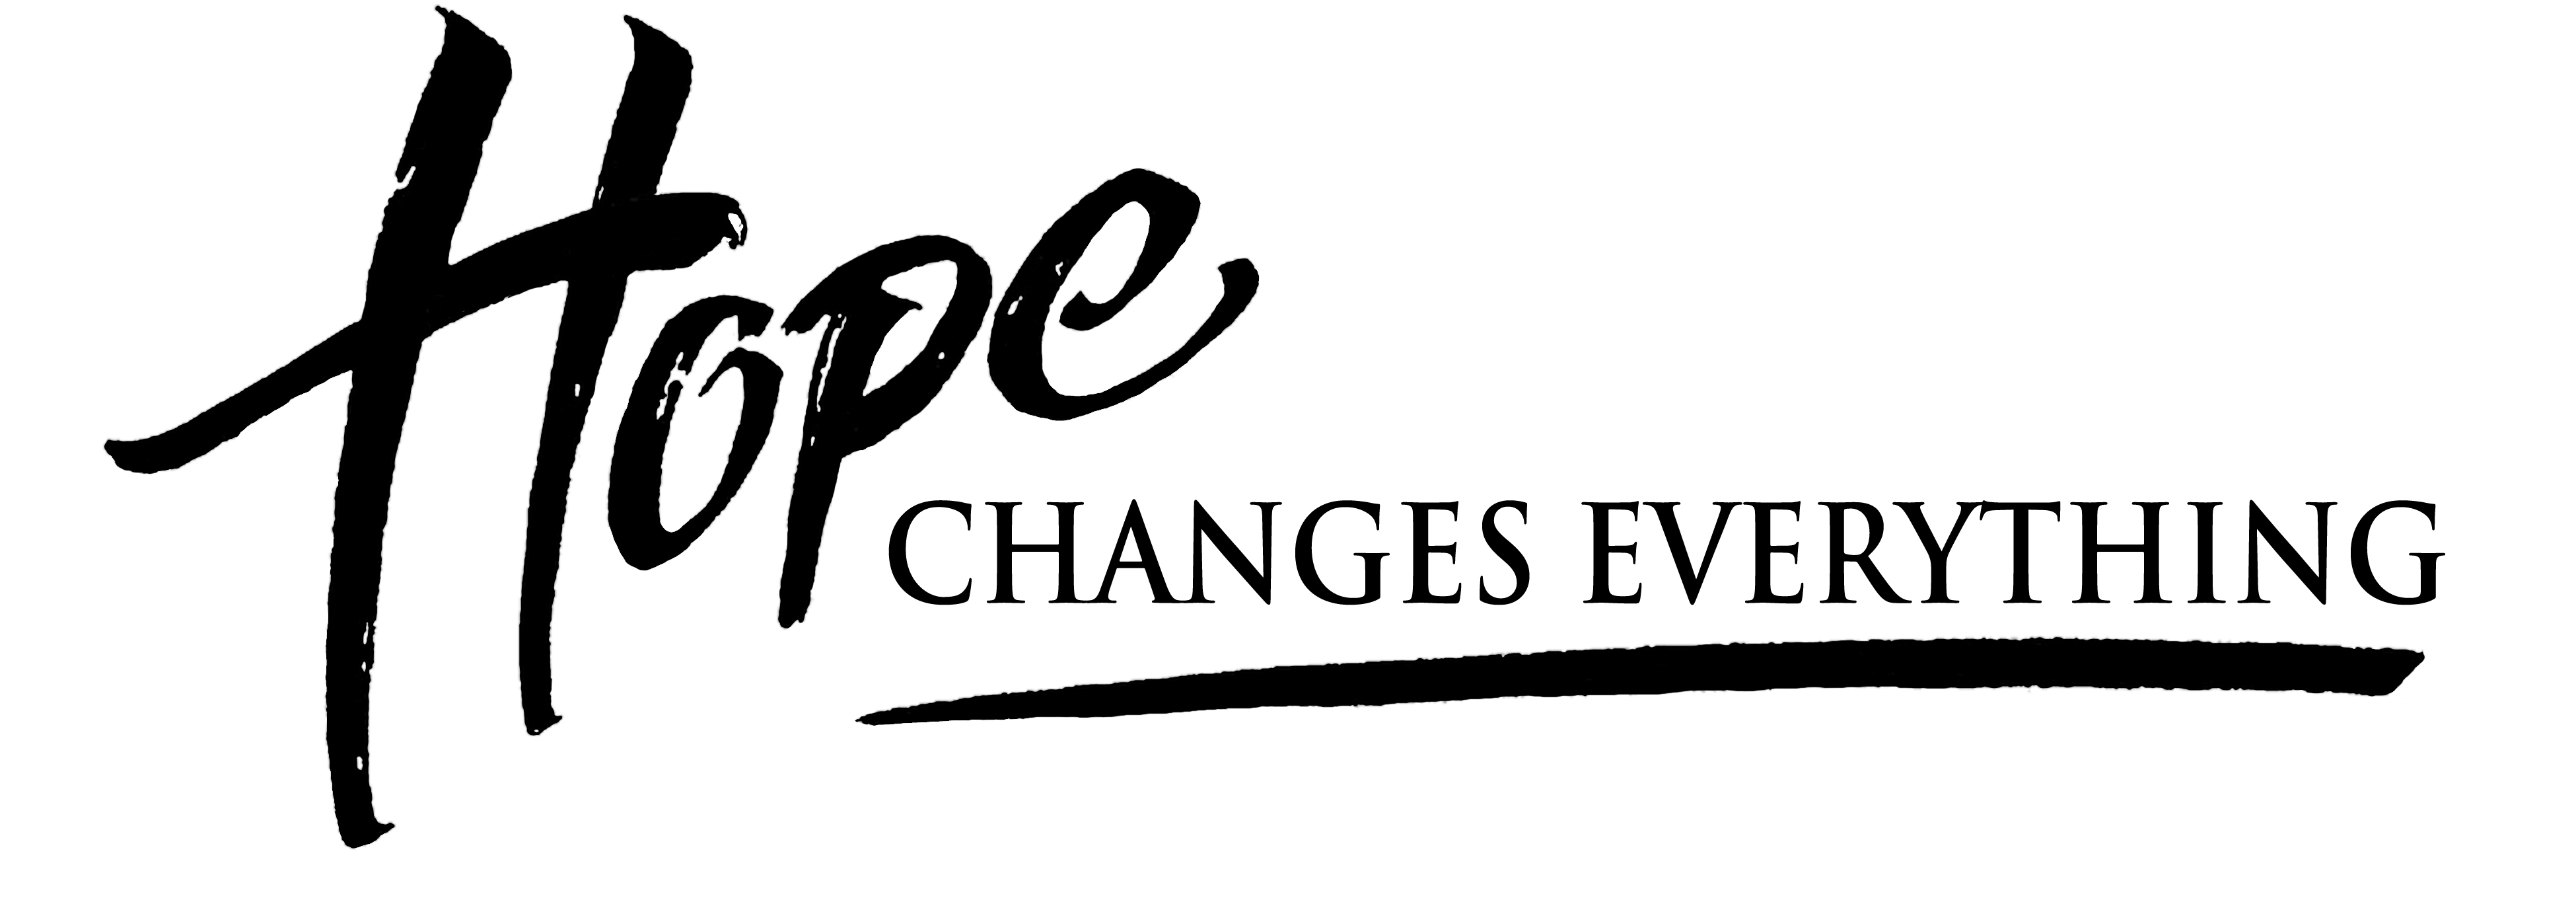 Christian quotes about changes in life